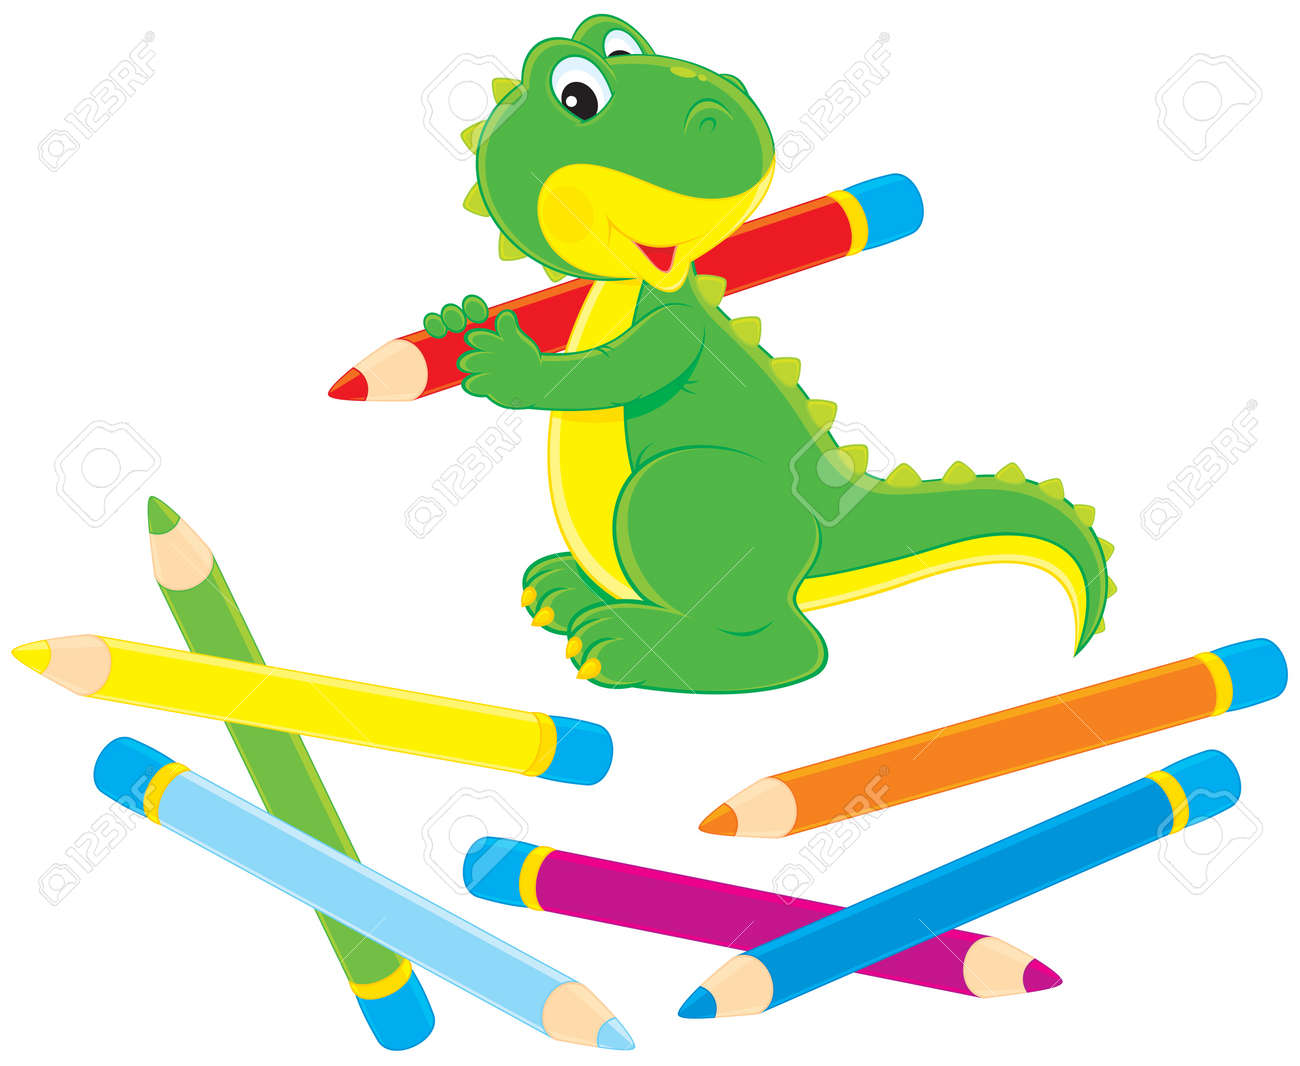 Green dinosaur drawing with color pencils Stock Vector - 11674806